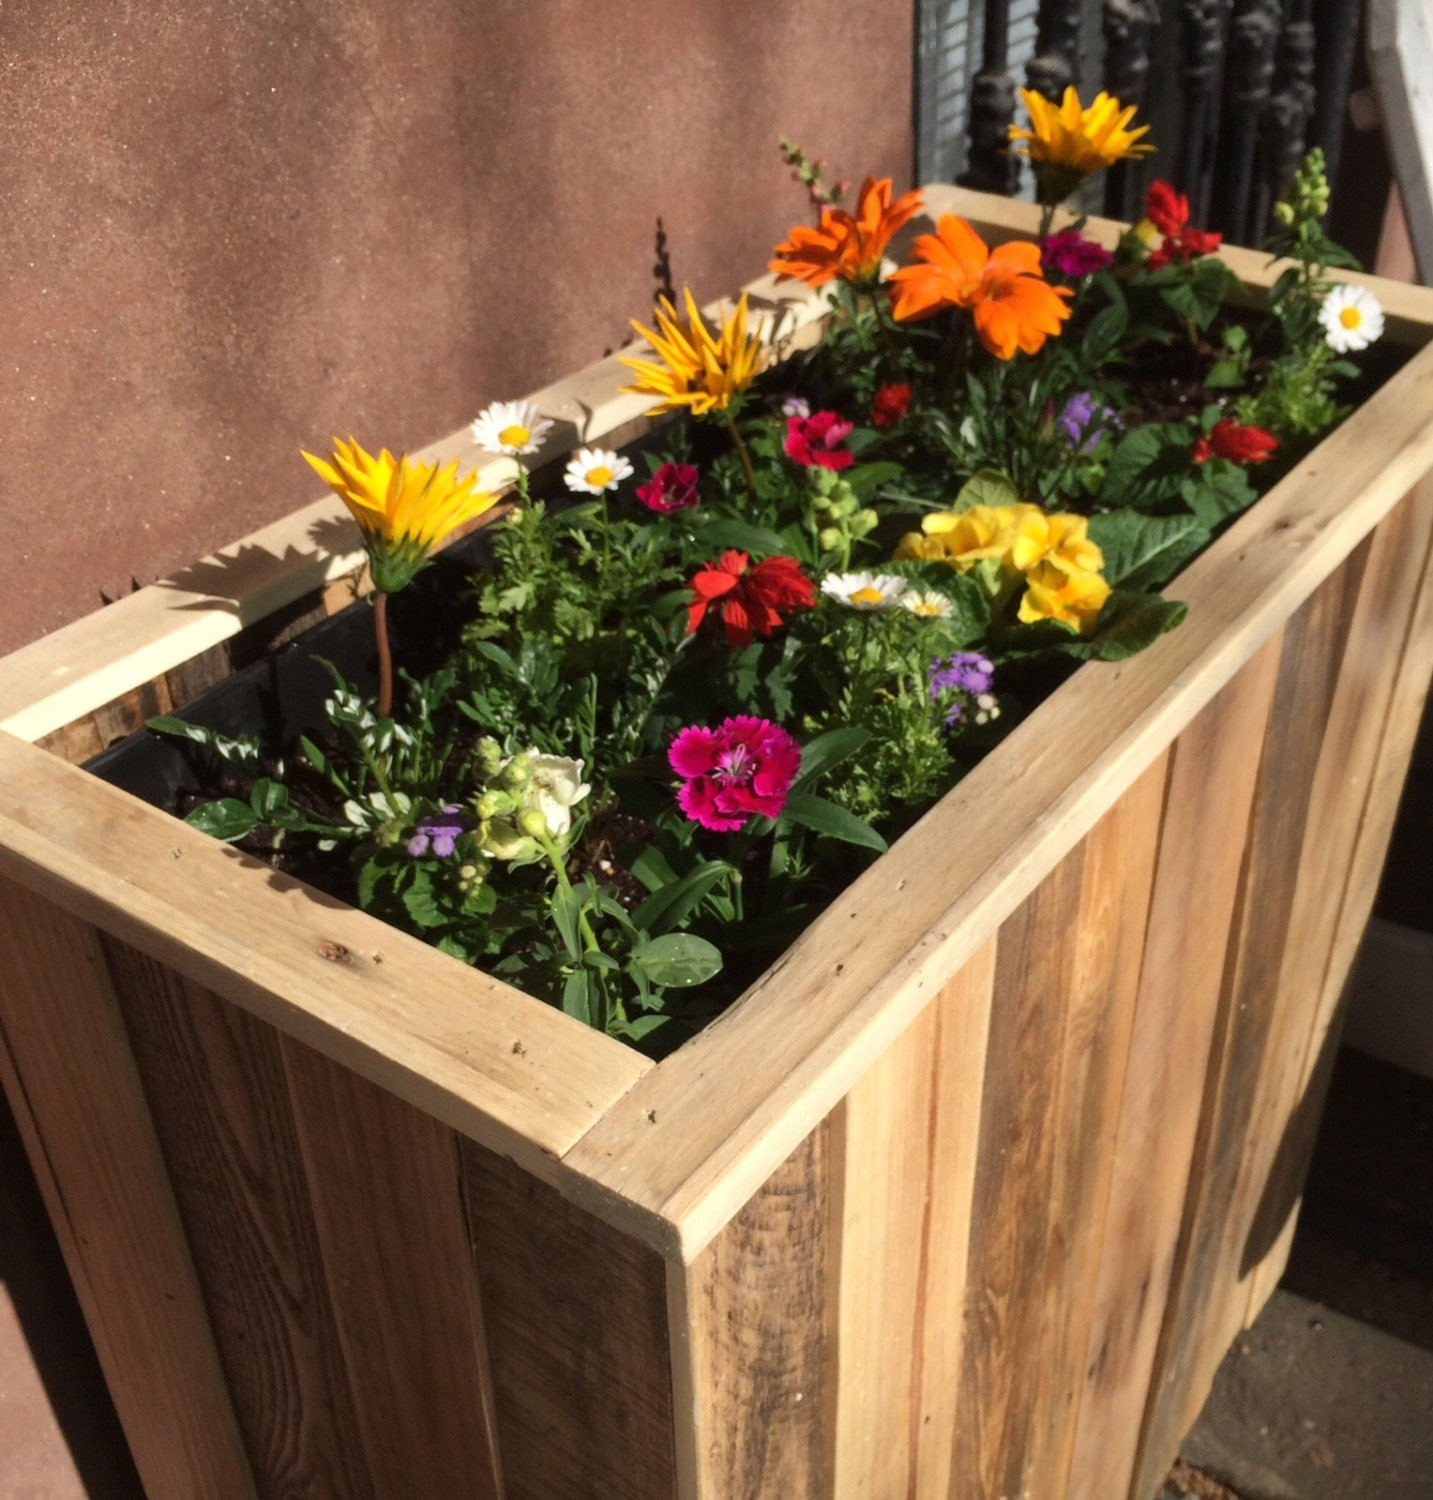 Diy Recycled Planters: Reclaimed Pallet Wood Planter Box By Streetwood On Etsy